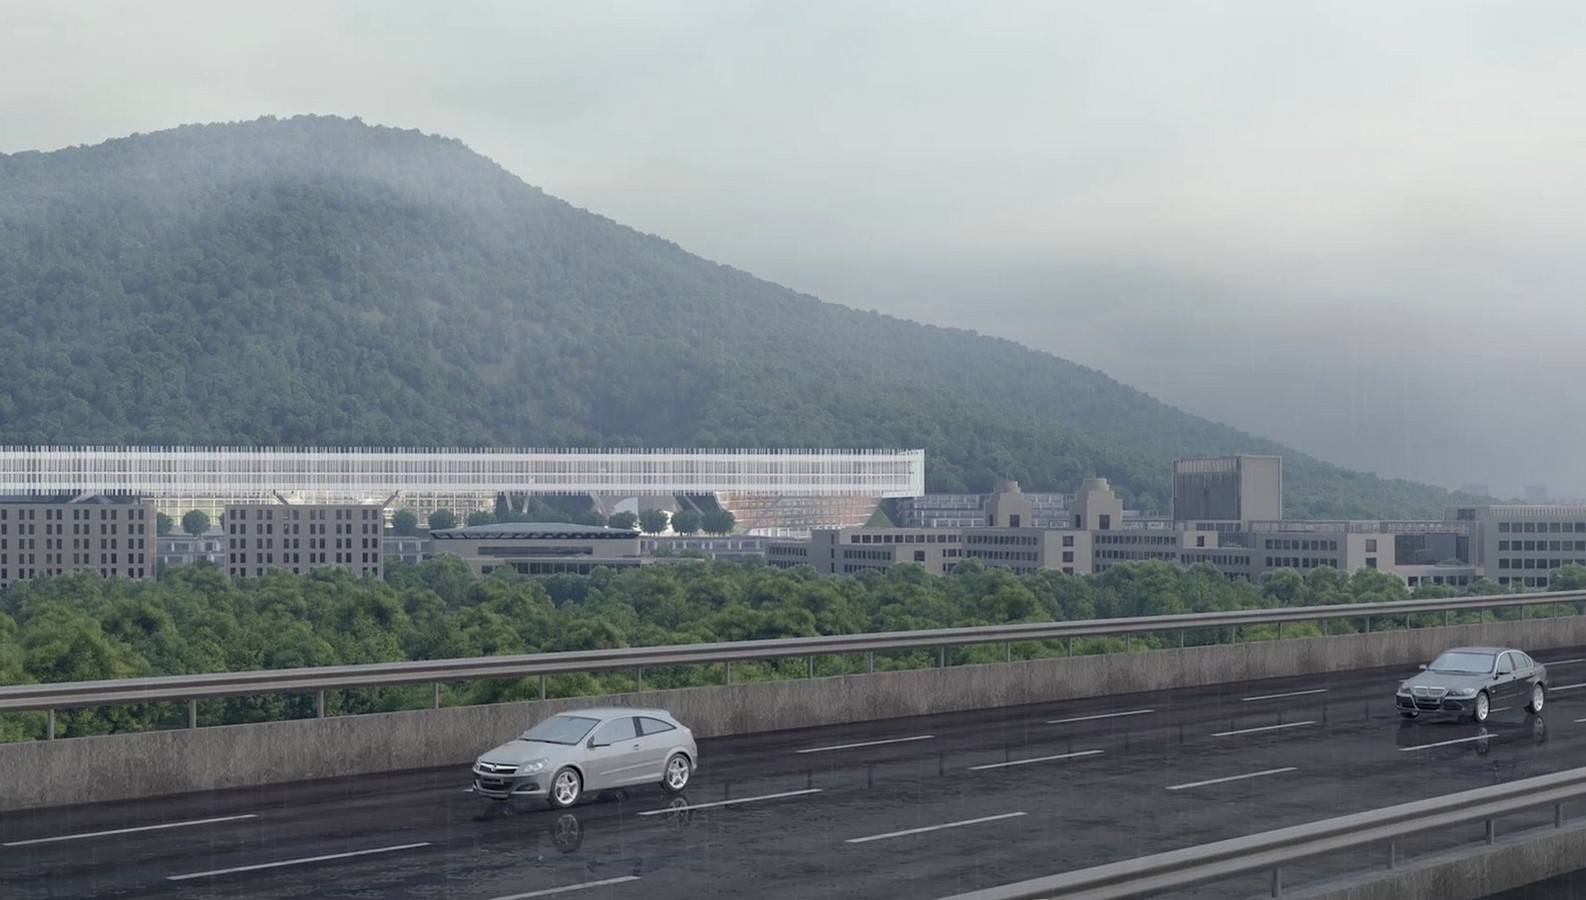 Shenzhen Institute Of Design And Innovation to be designed by Dominique Perrault Architecture - Sheet3